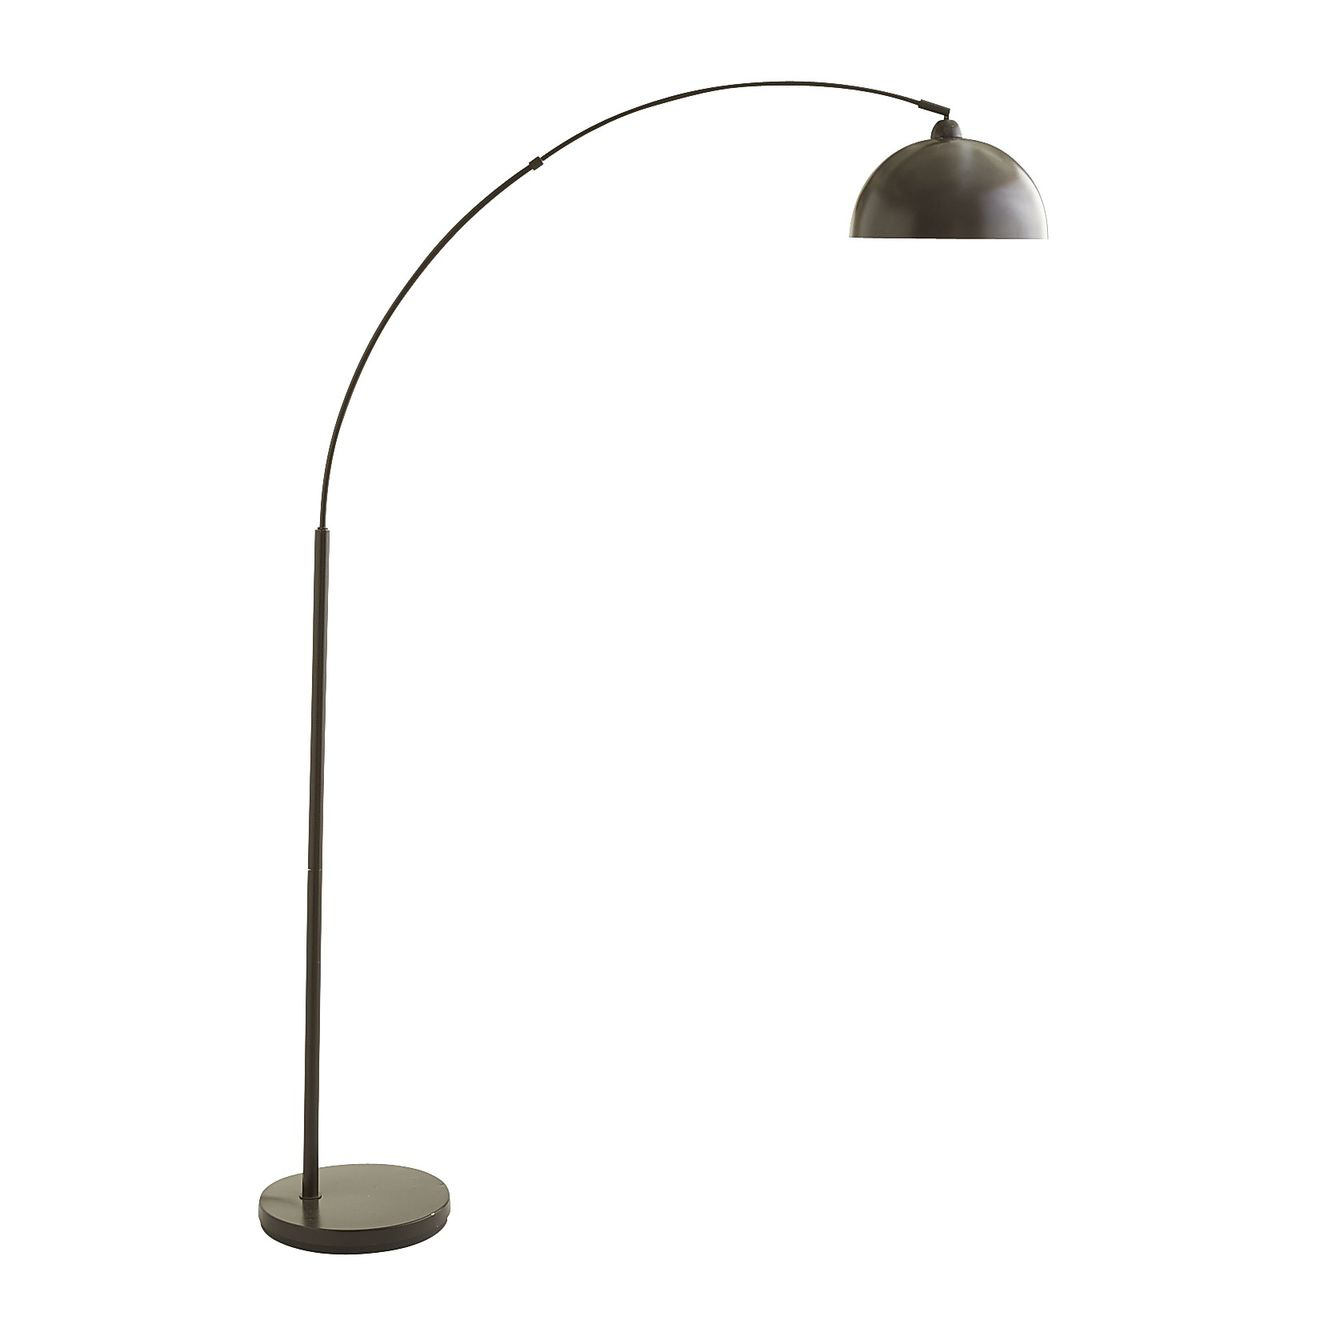 Small Arc Floor Lamp Arc Or Arch Floor Lamps Roundup Apartment Therapy